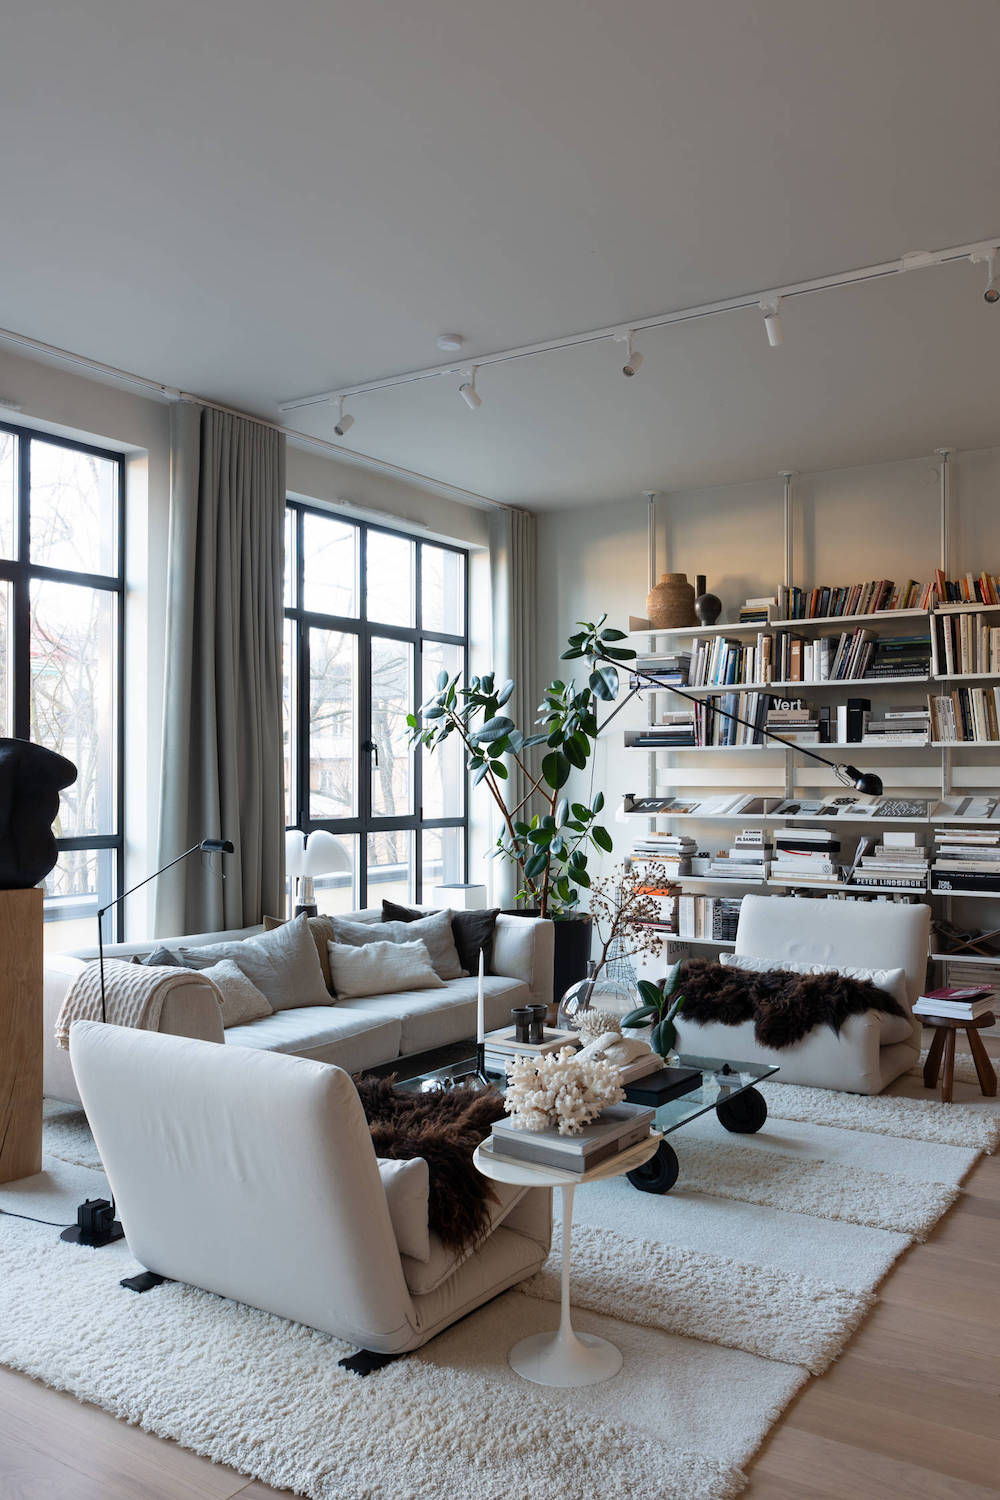 Tour The Stunning Home Of Fabulous Interior Designer Lotta Agaton Nordic Design